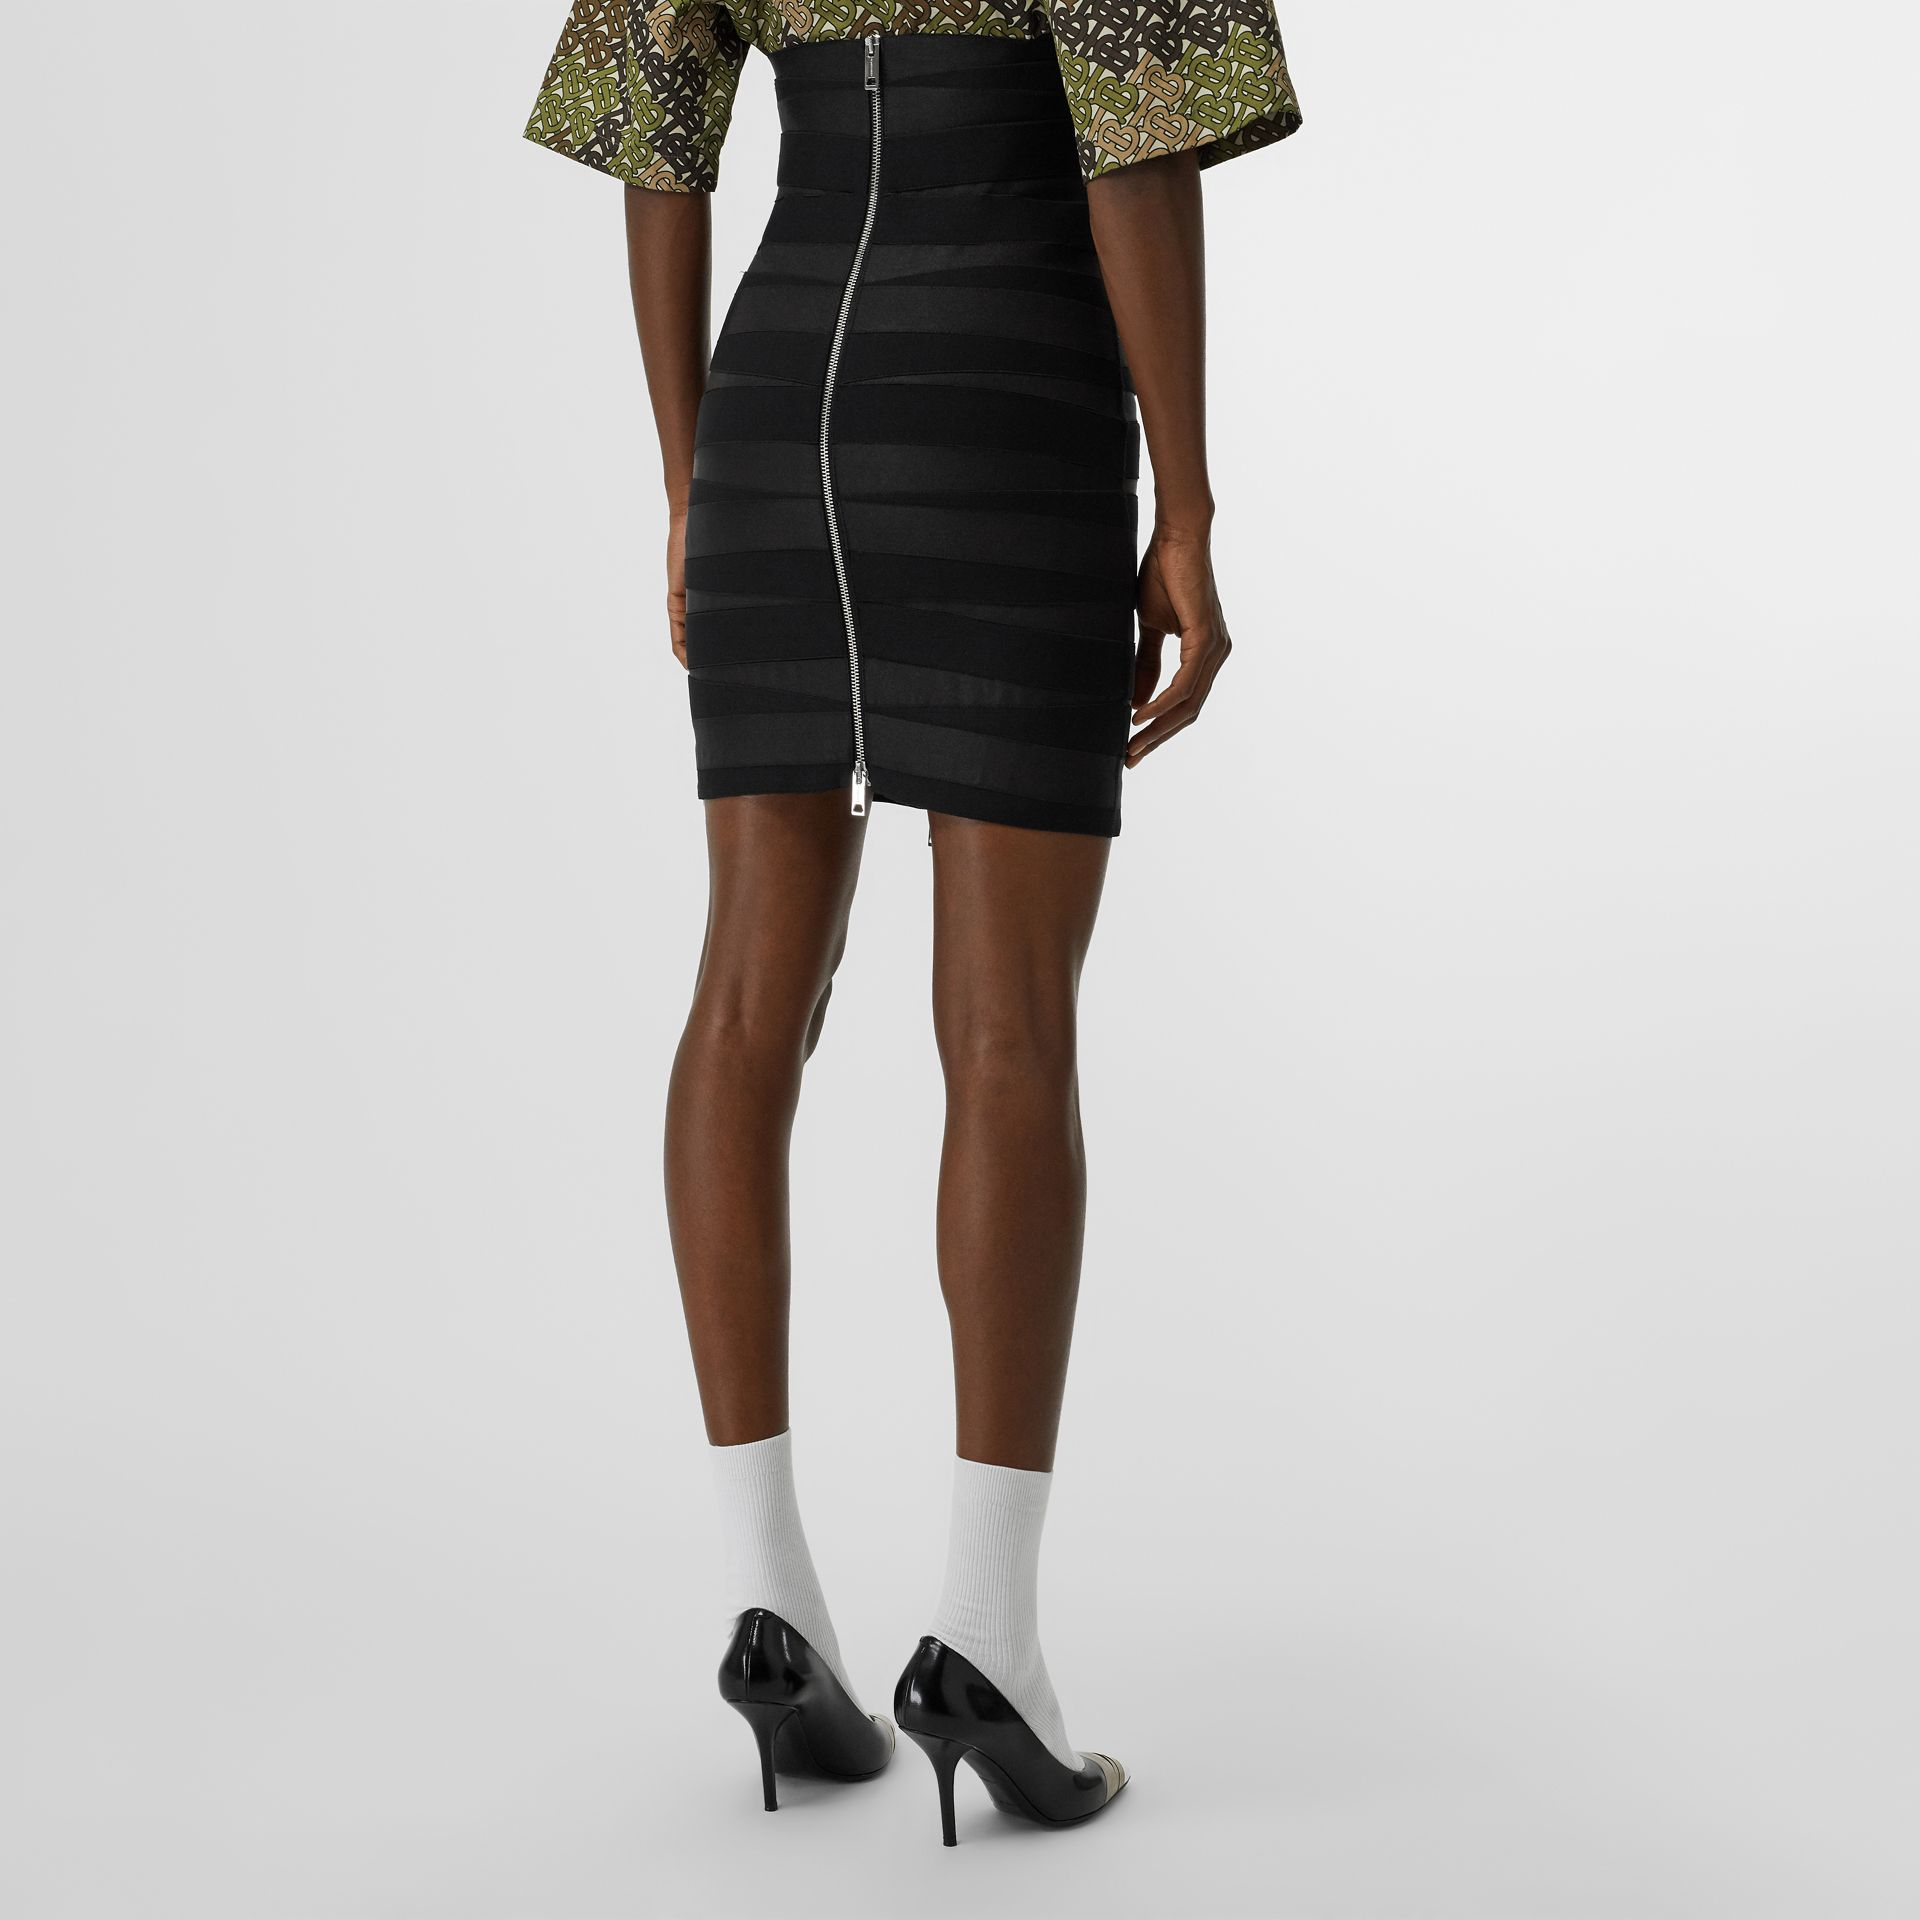 Stretch Zip-front Bandage Skirt in Black - Women | Burberry United Kingdom - gallery image 2